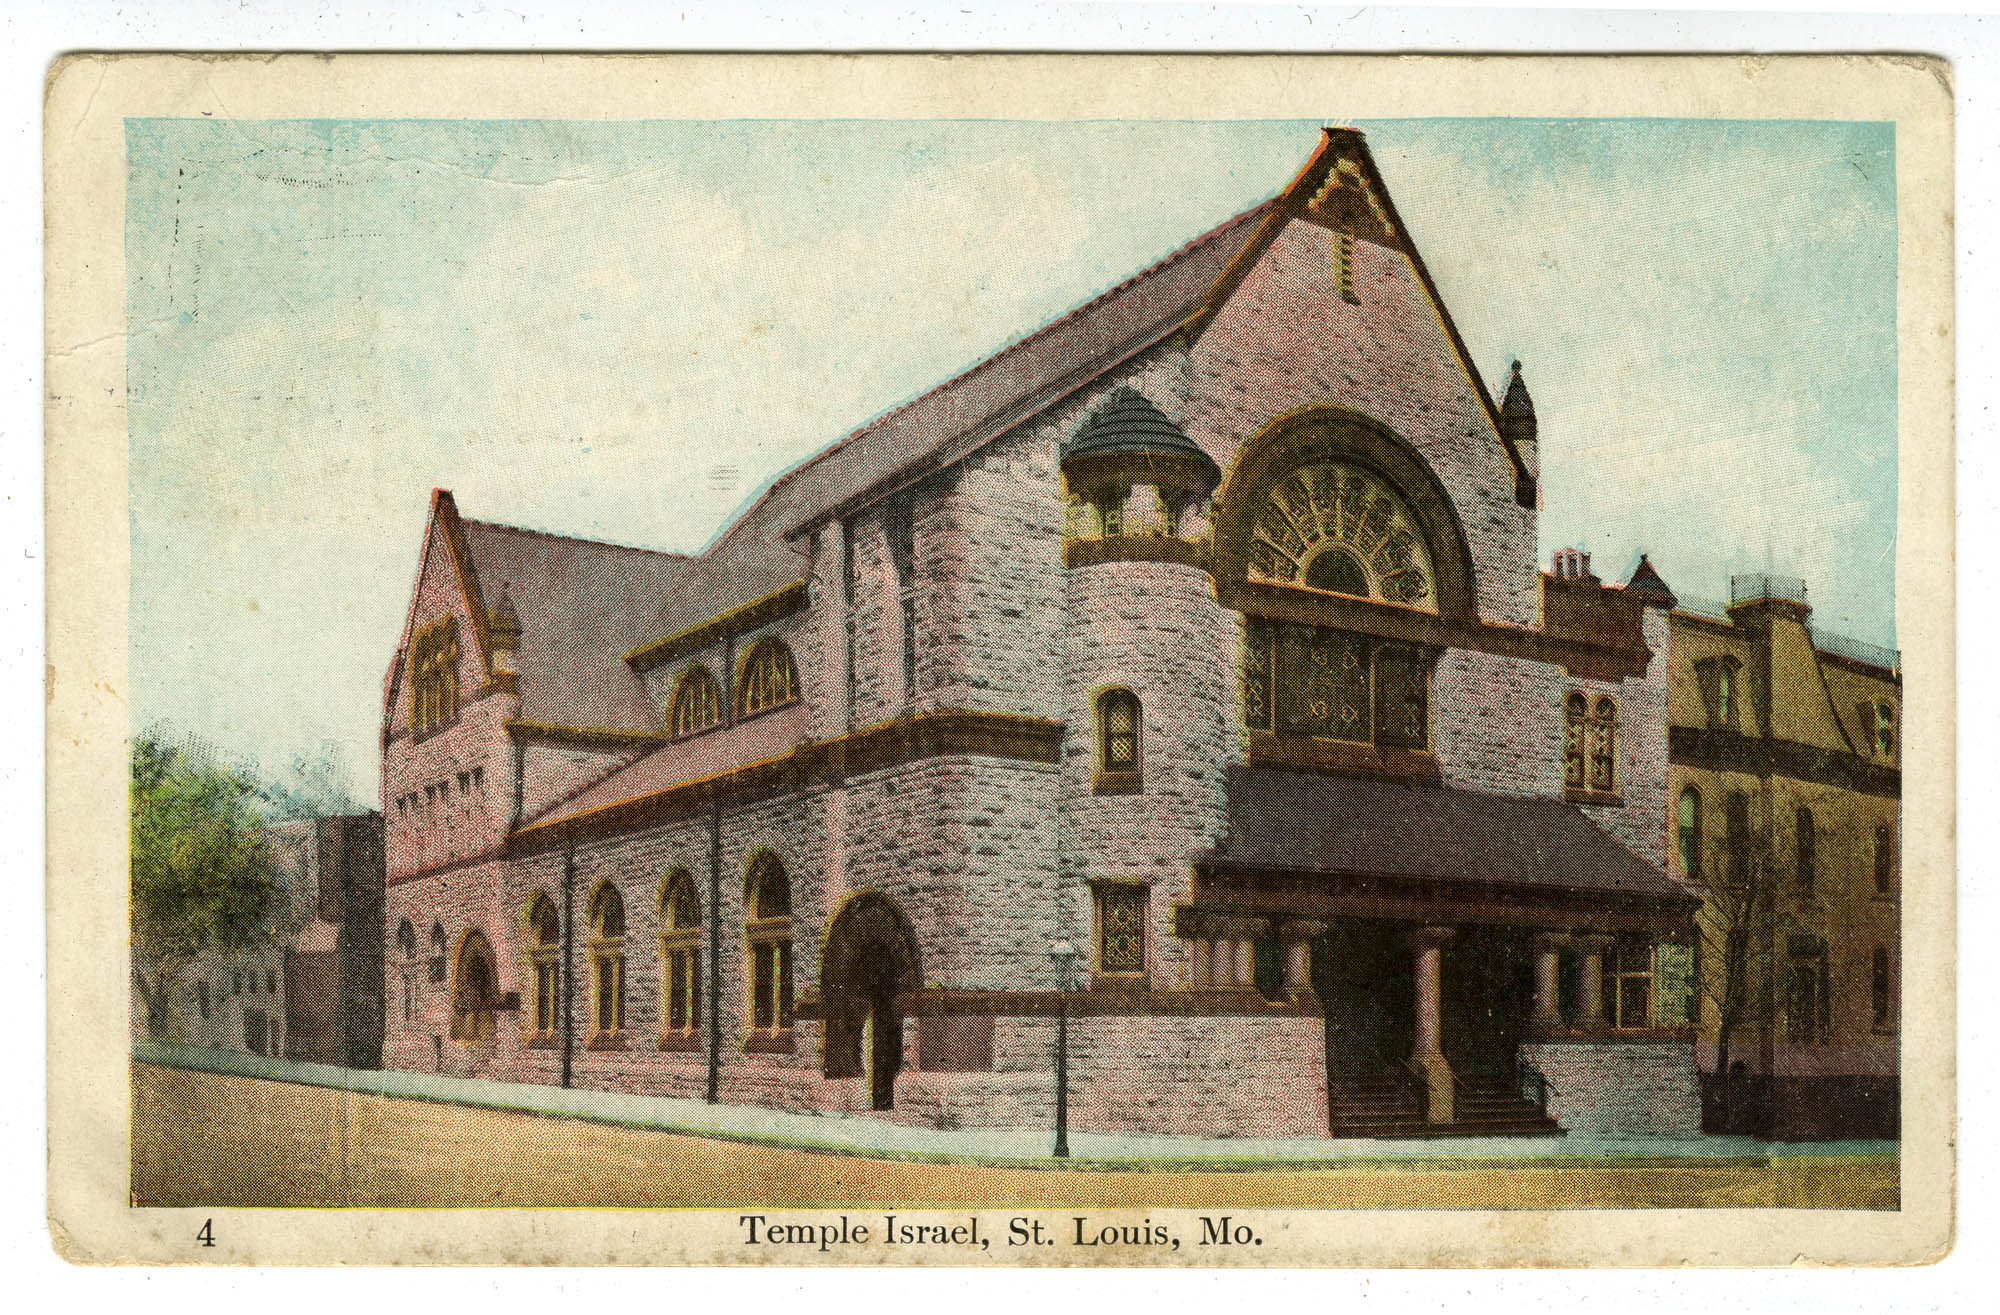 Temple Israel, St. Louis, Mo.